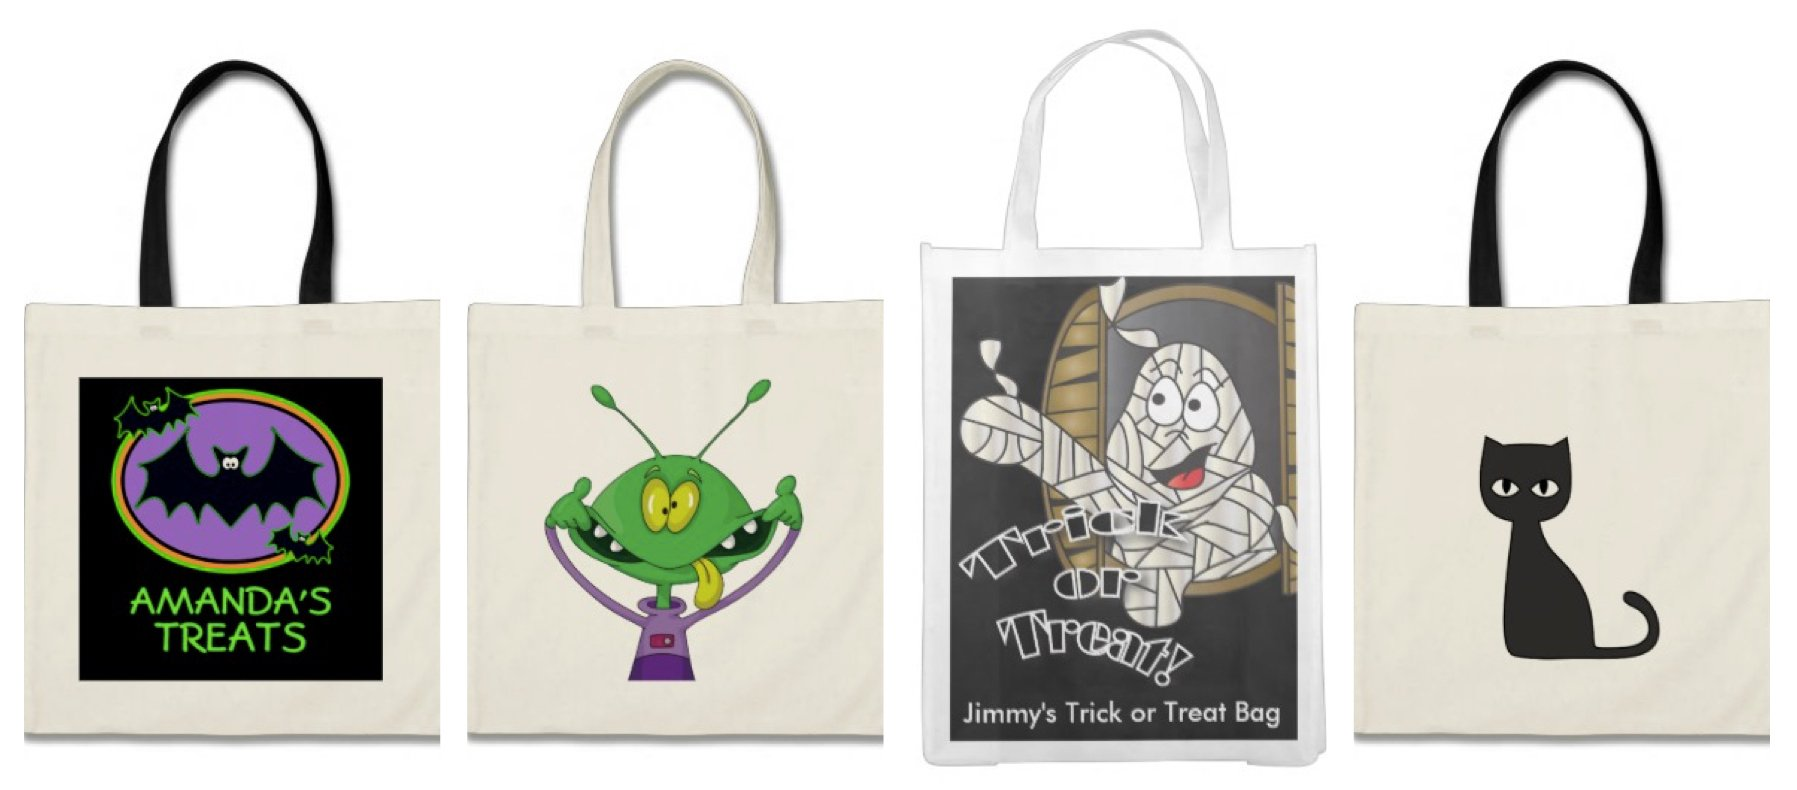 Re-usable Trick-or-Treat Bags